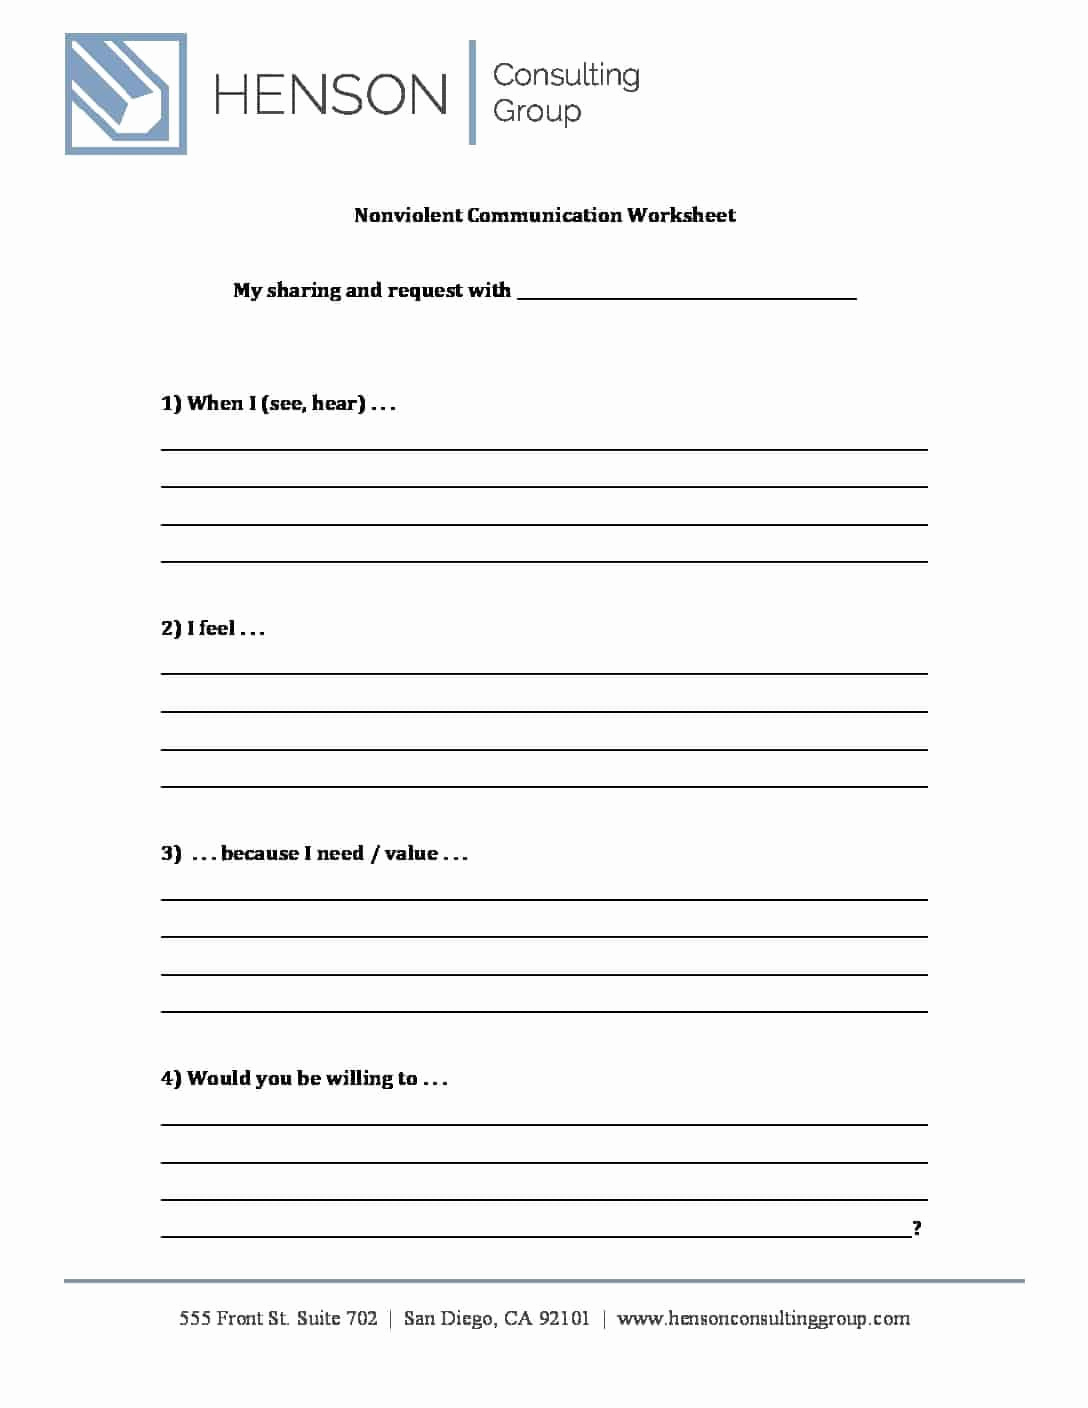 Communication Worksheets for Adults Best Of Munication Worksheets for Adults Pdf — Db Excel